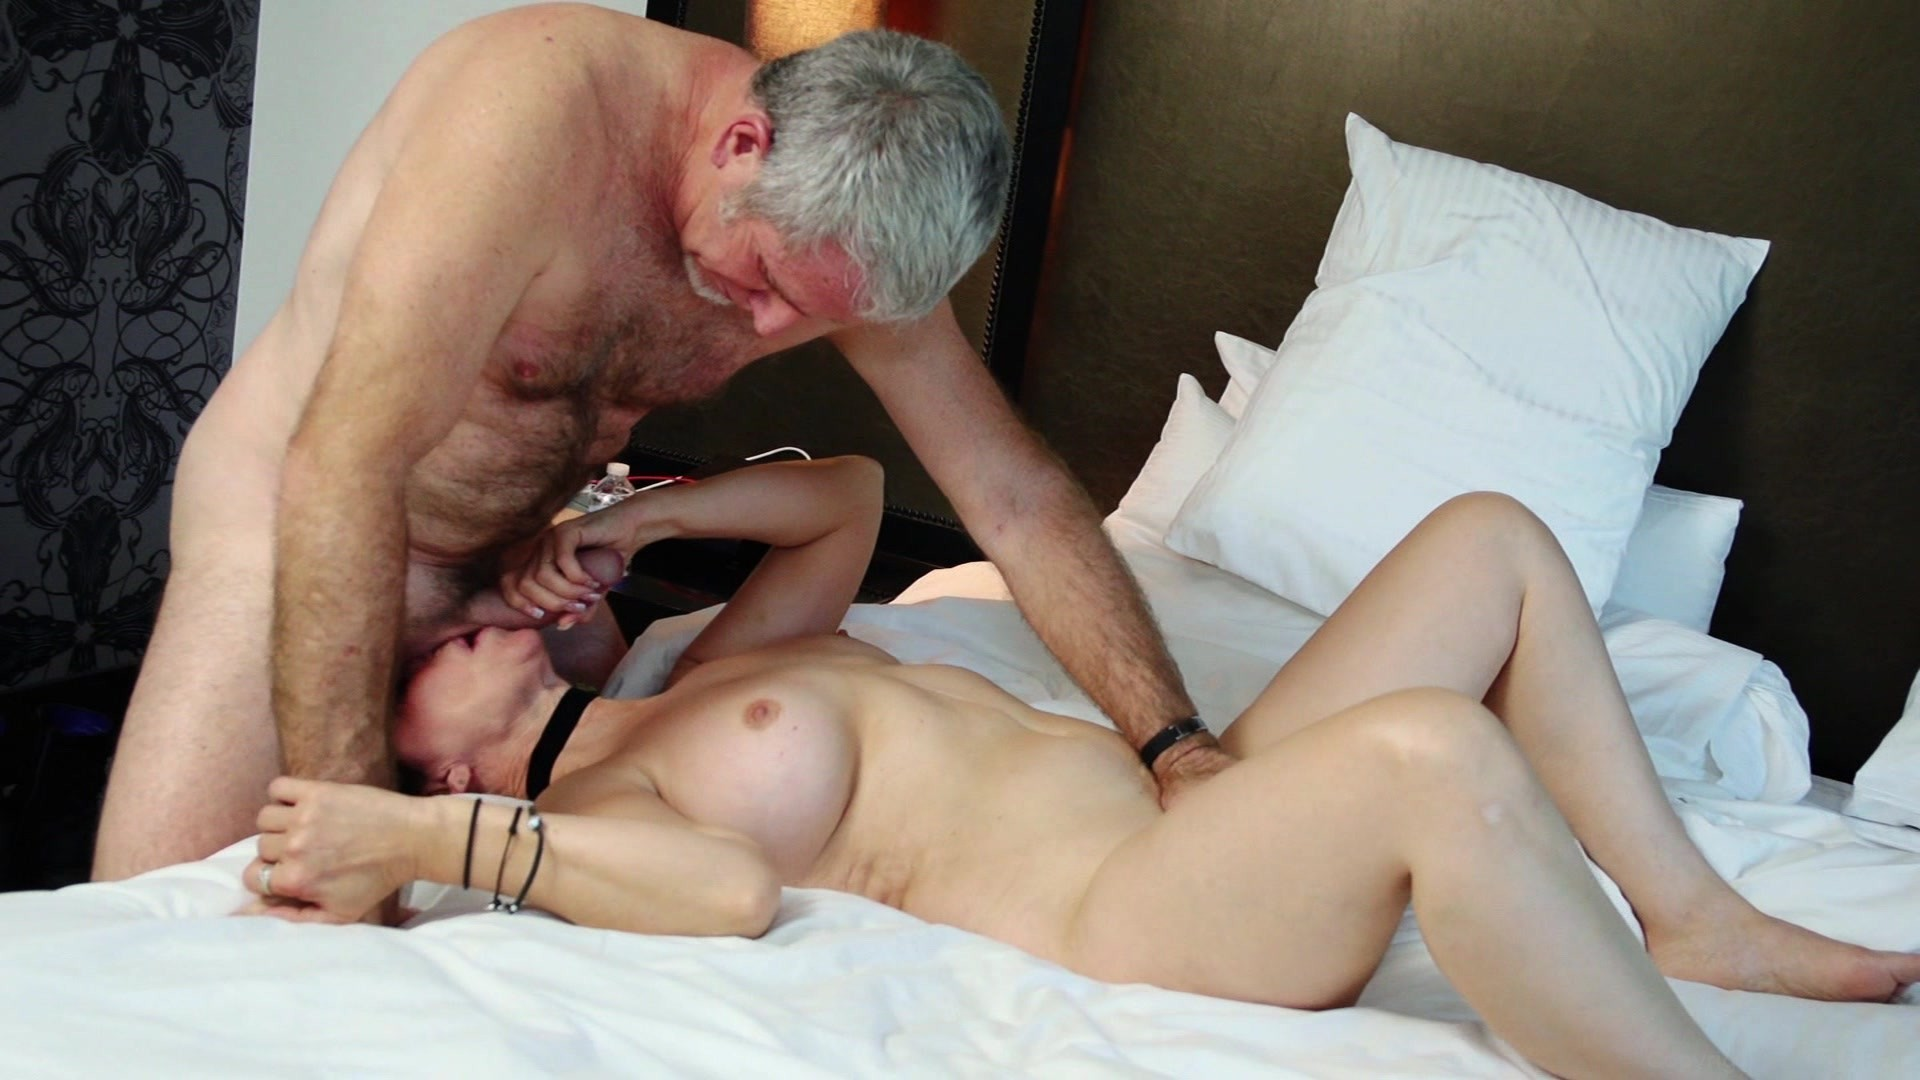 All step dad porn pics available for watching with no limits